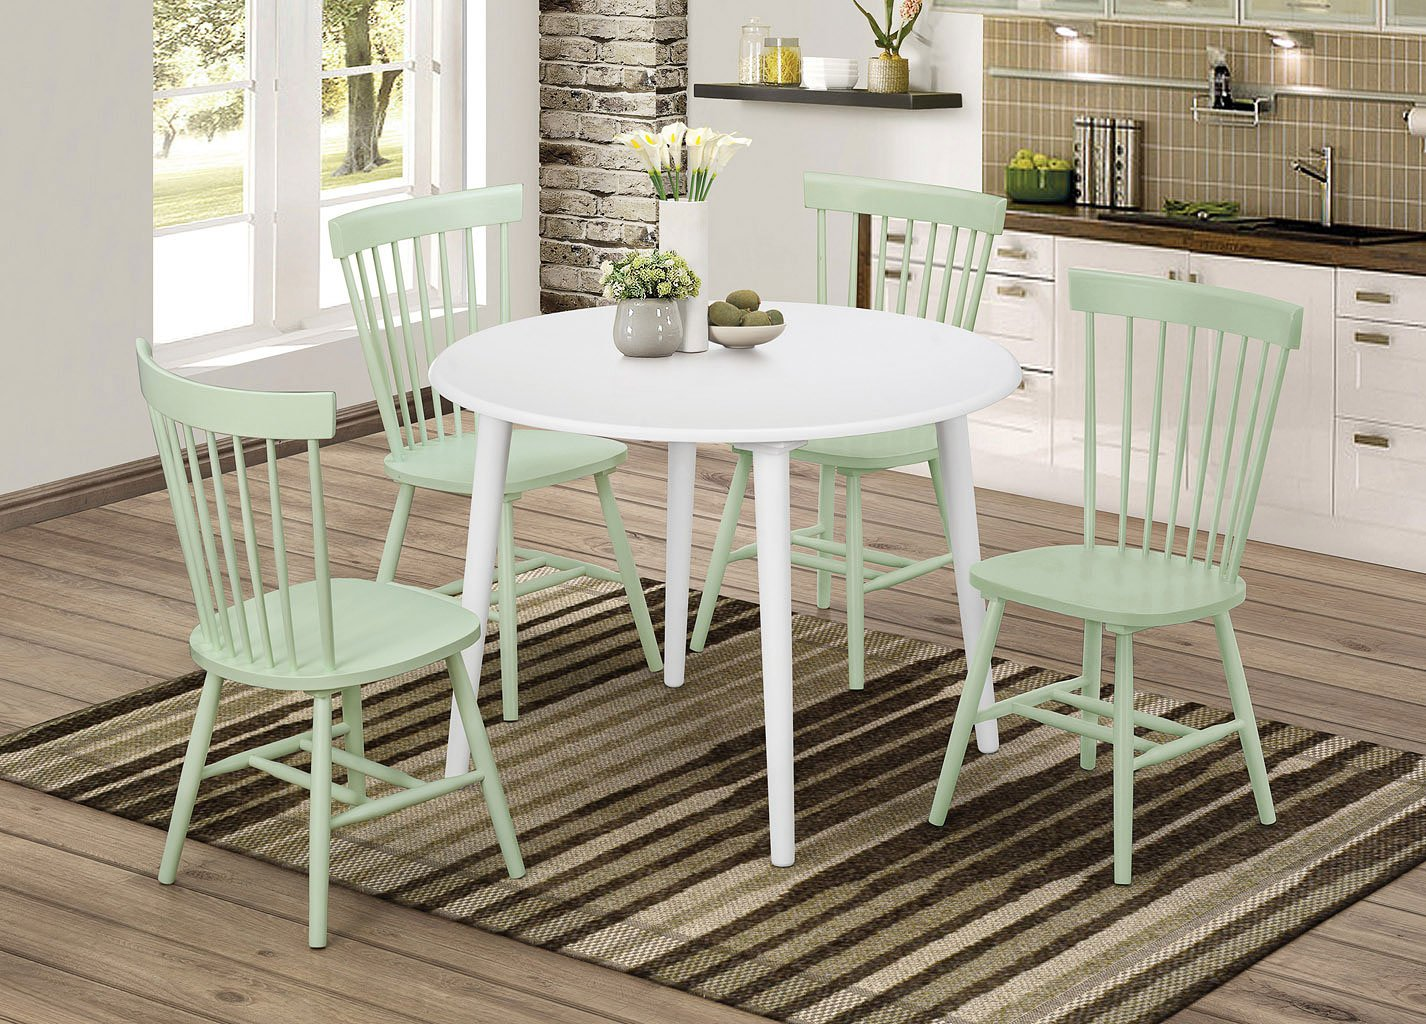 Mint green furniture Wall Emmett Round Dining Room Set W Mint Green Chairs By Coaster Furniture Furniturepick Furniture Pick Emmett Round Dining Room Set W Mint Green Chairs By Coaster